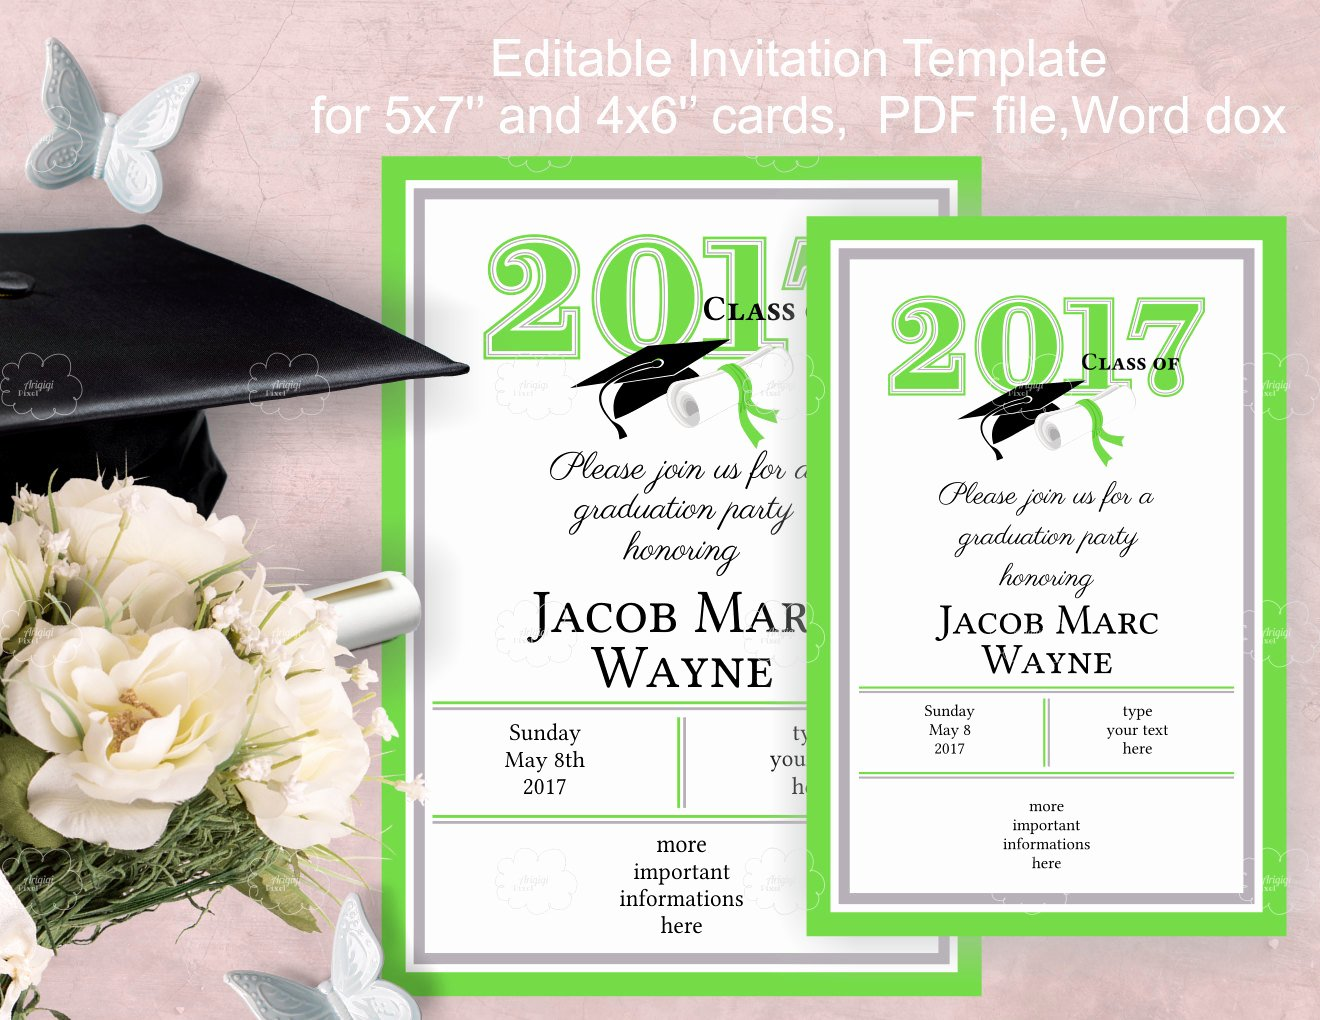 Graduation Party Invitation Template Free Elegant Graduation Party Invitation Template Edit Yourself